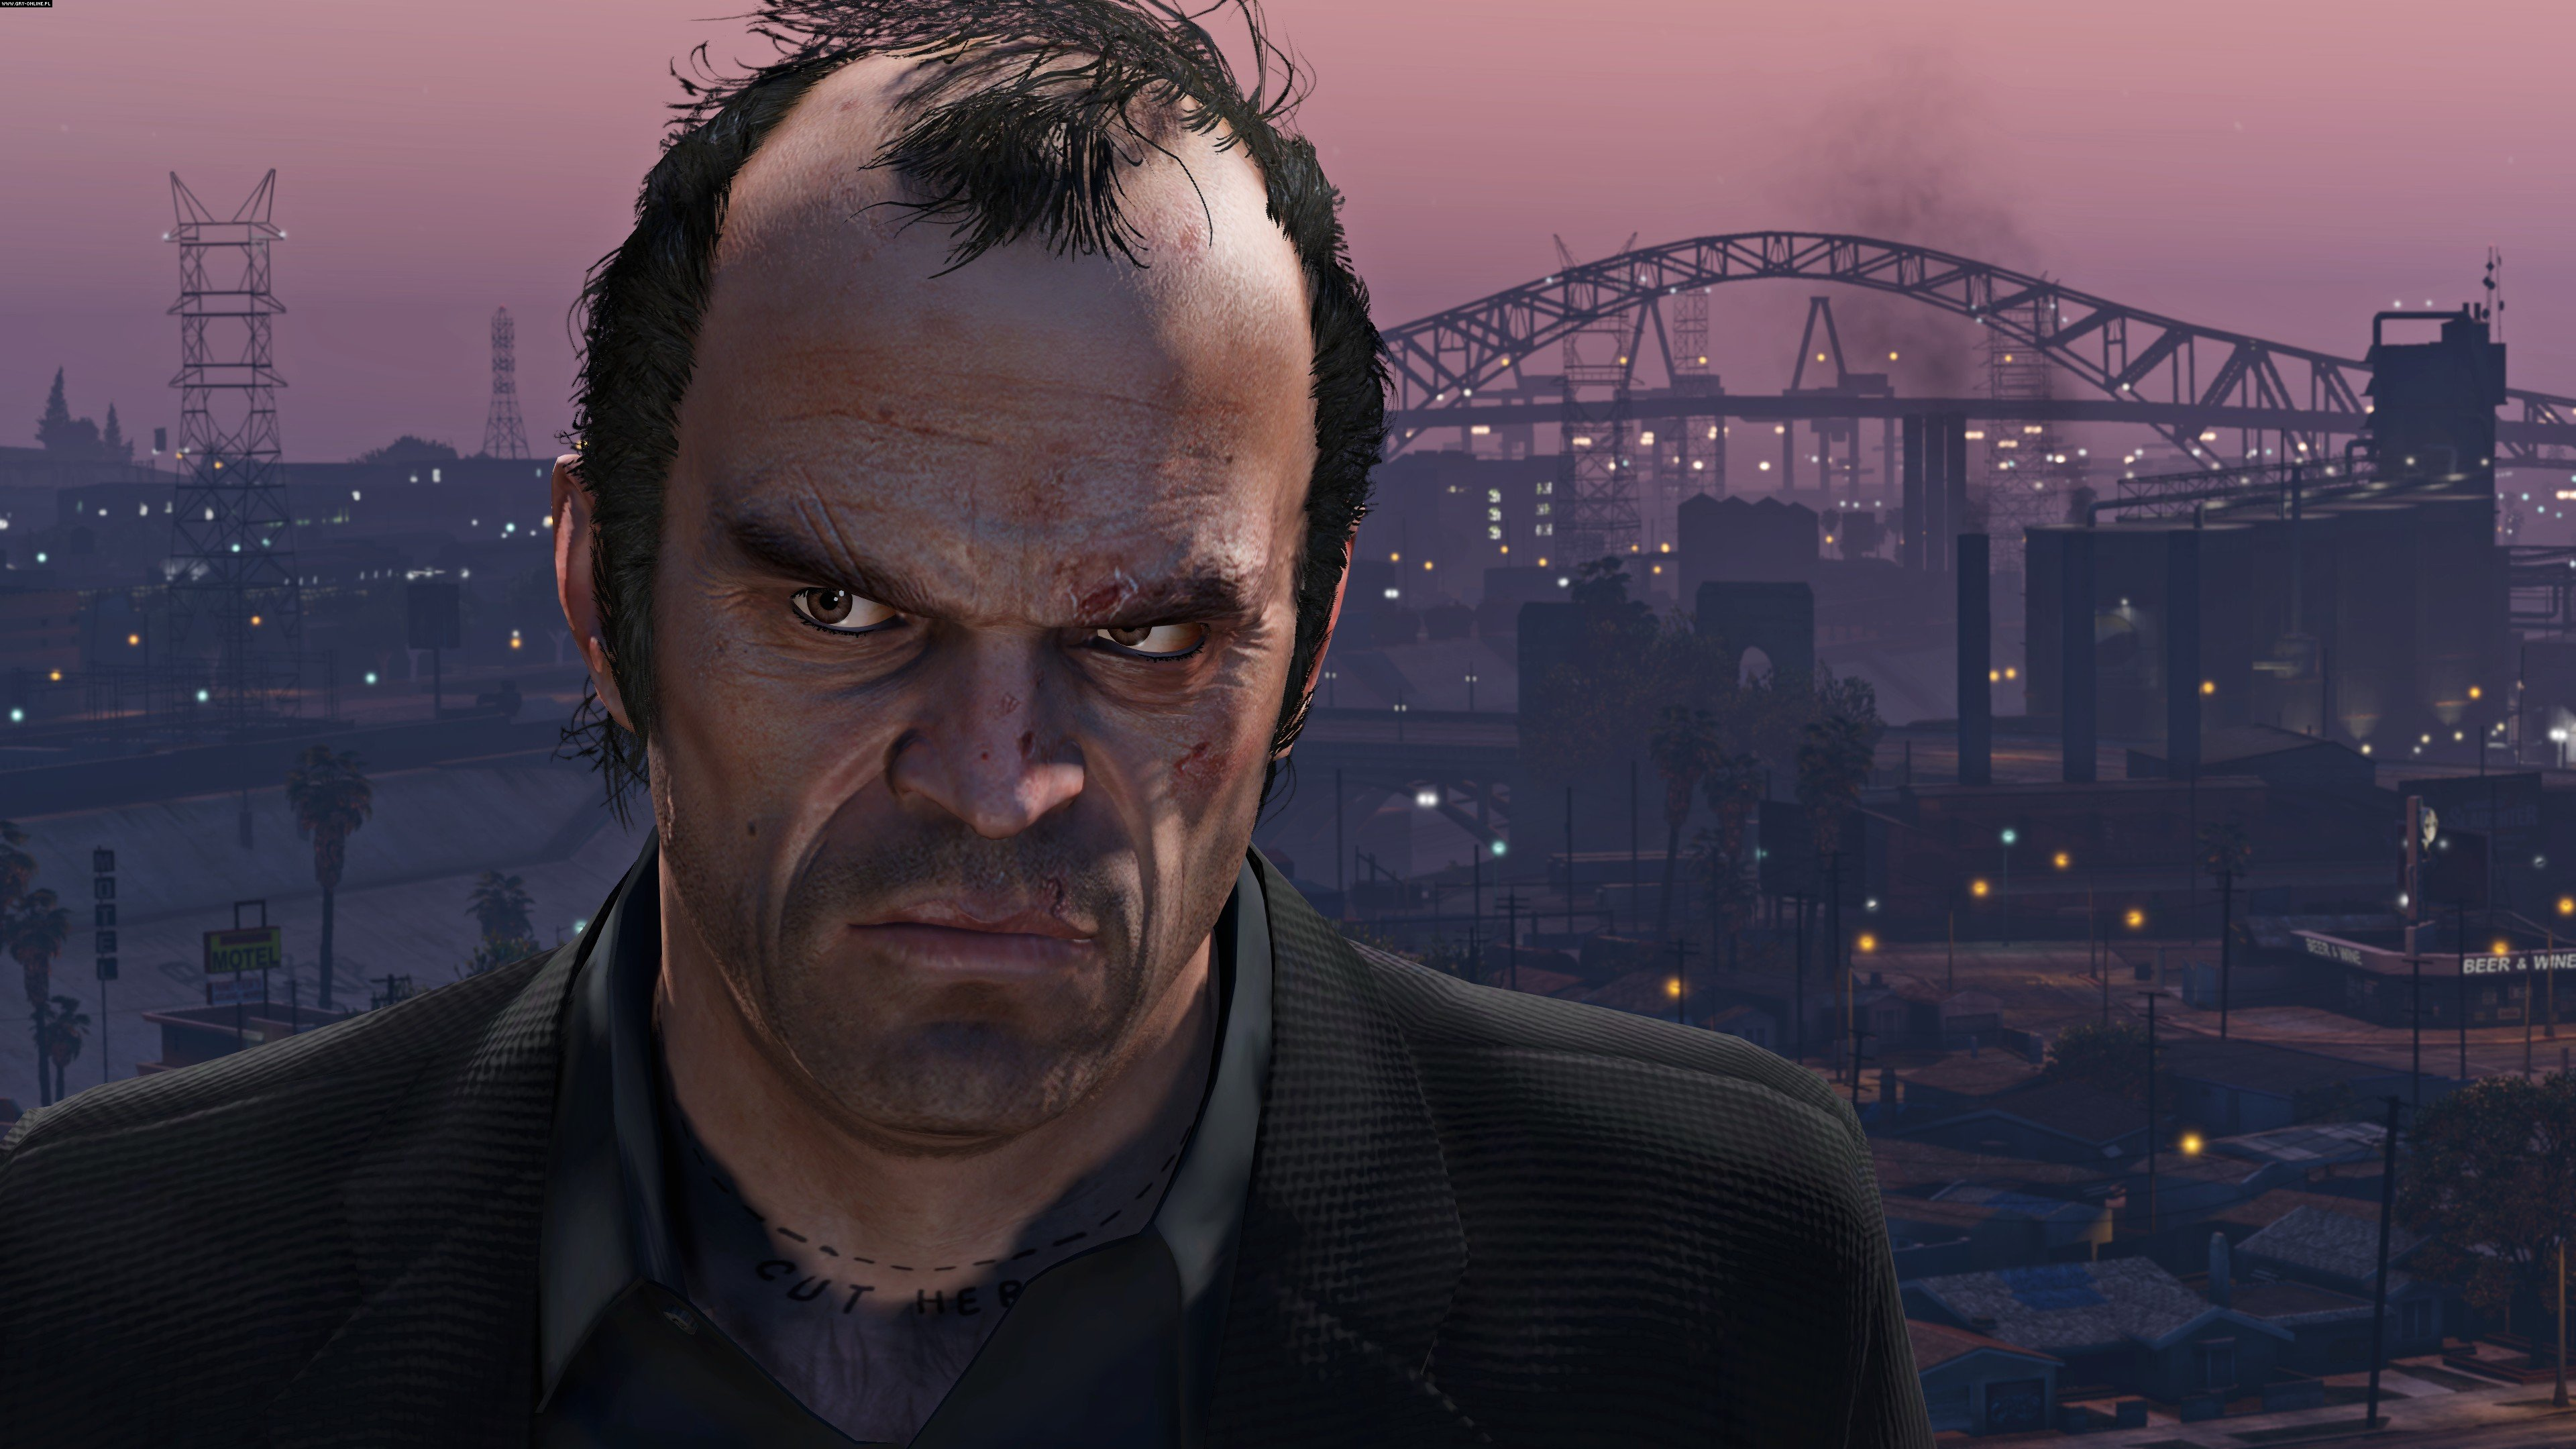 Grand Theft Auto V PC Games Image 3/396, Rockstar Games